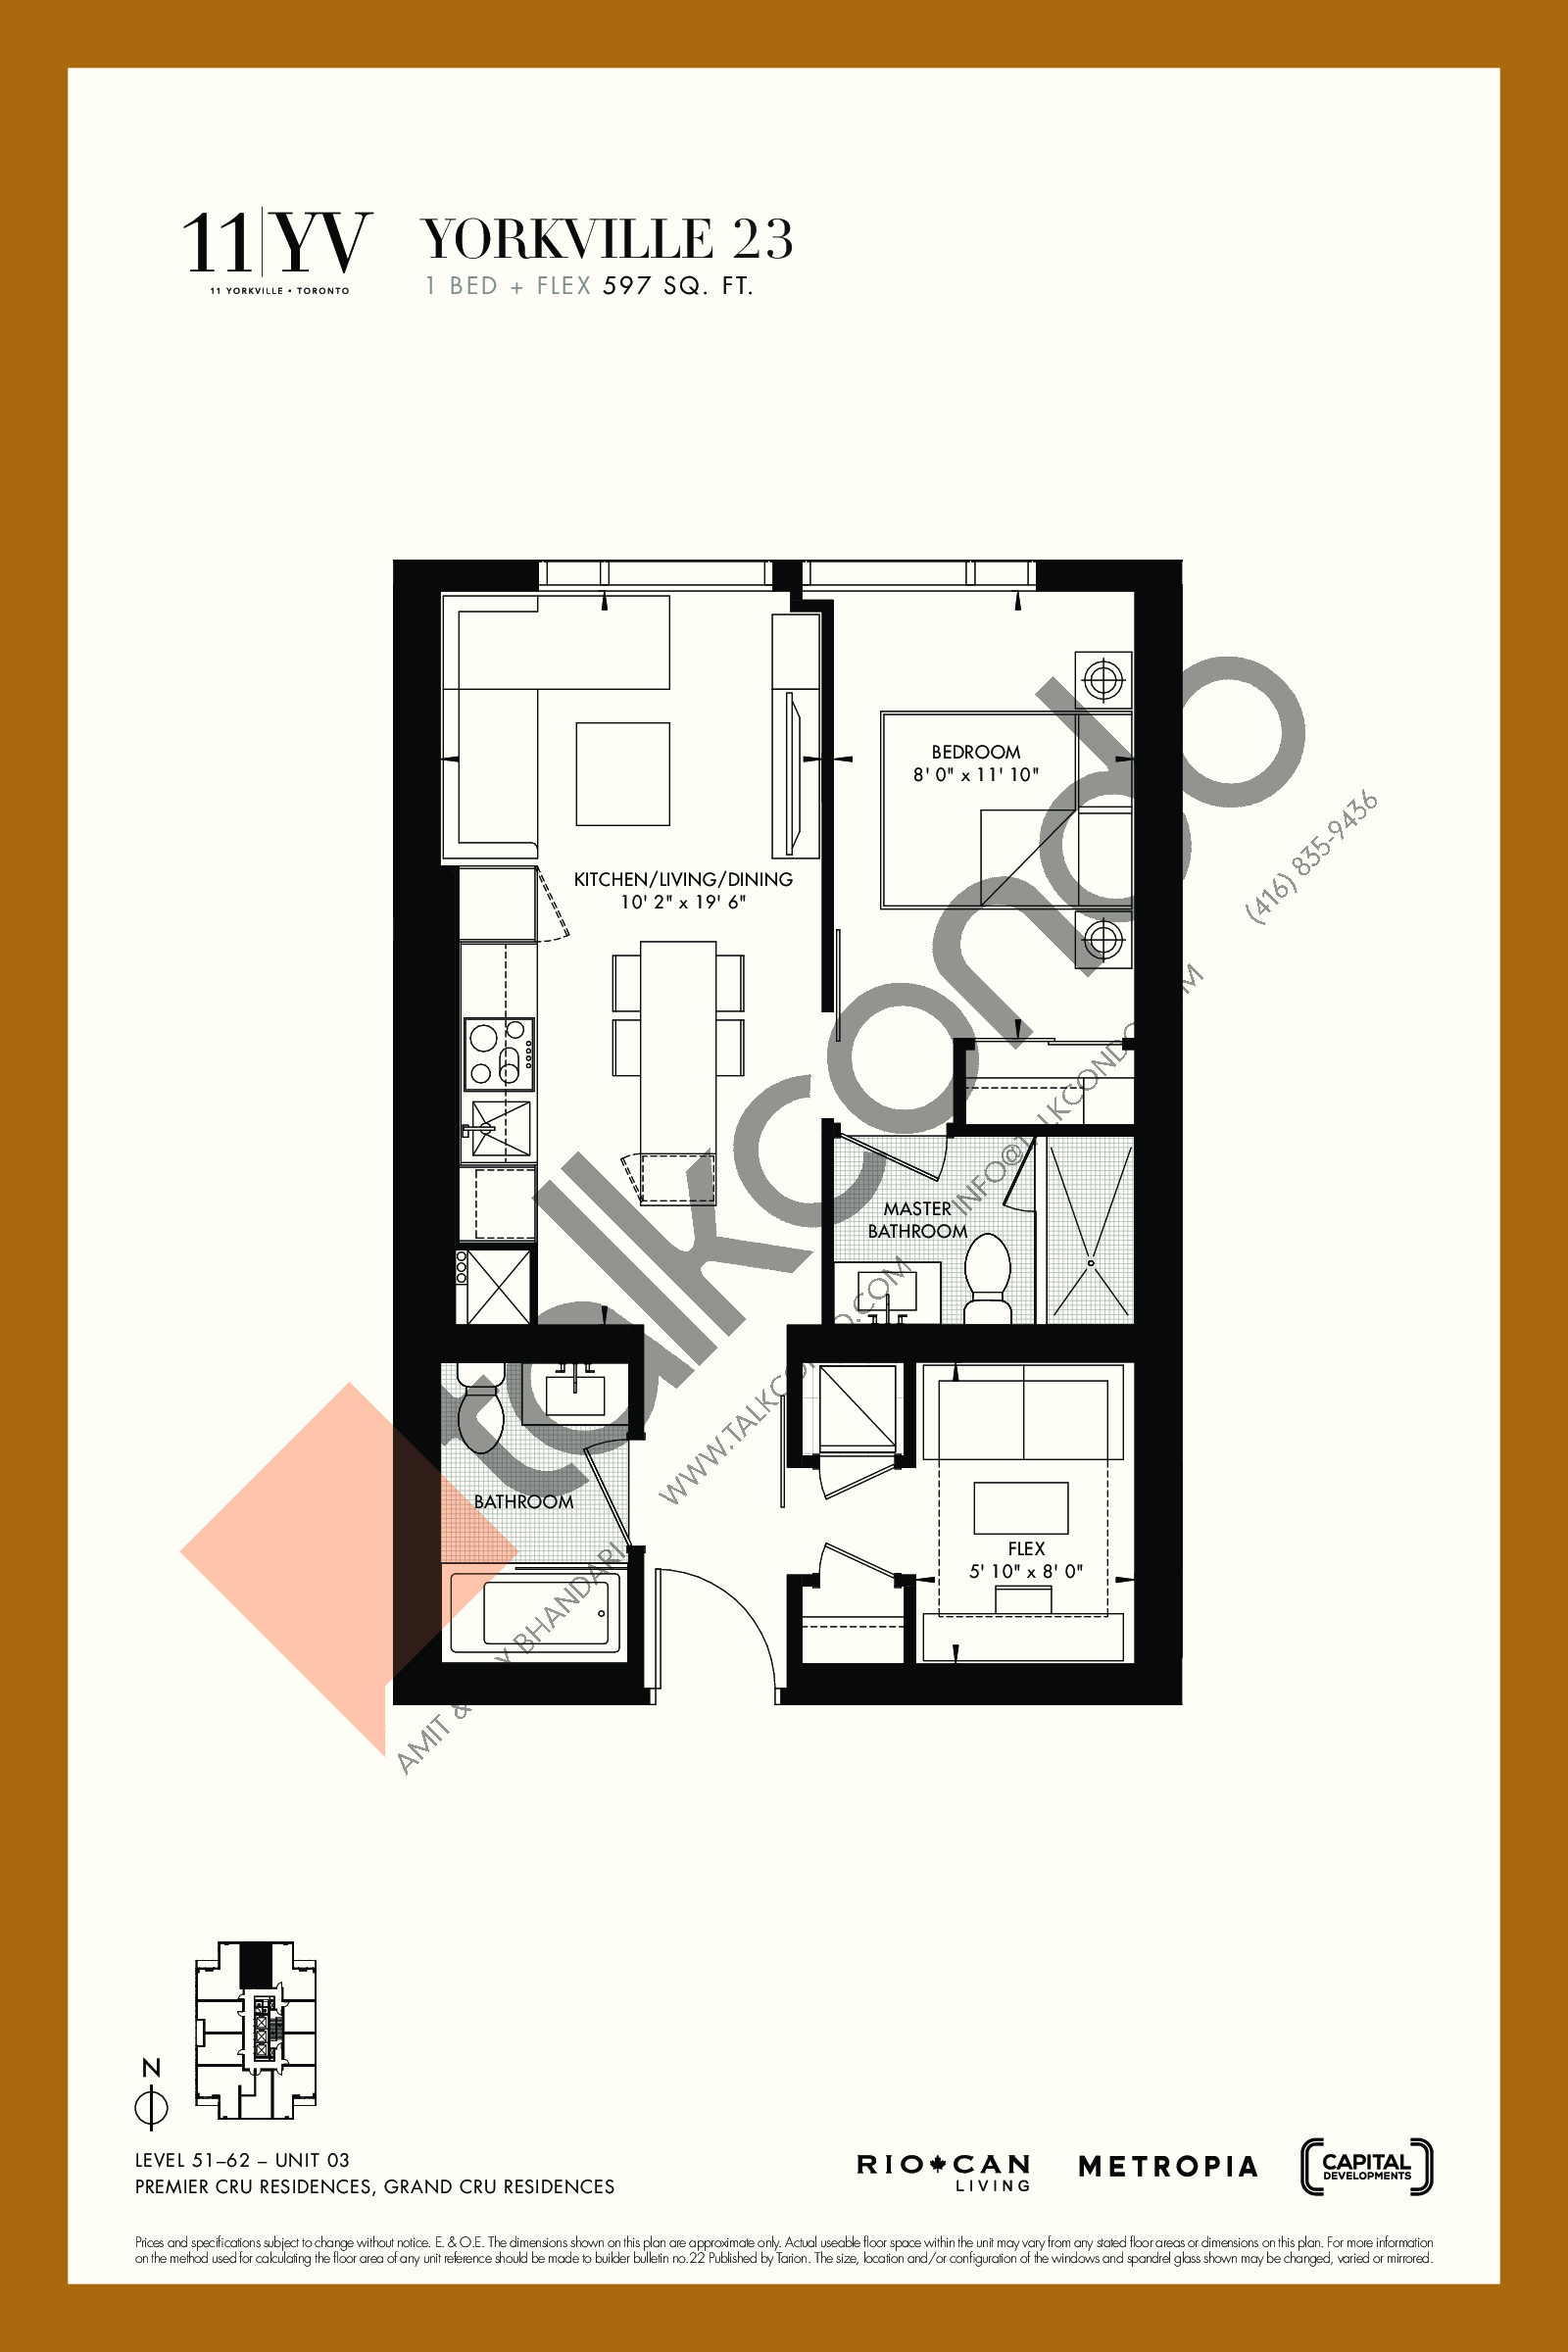 Yorkville 23 Floor Plan at 11YV Condos - 597 sq.ft